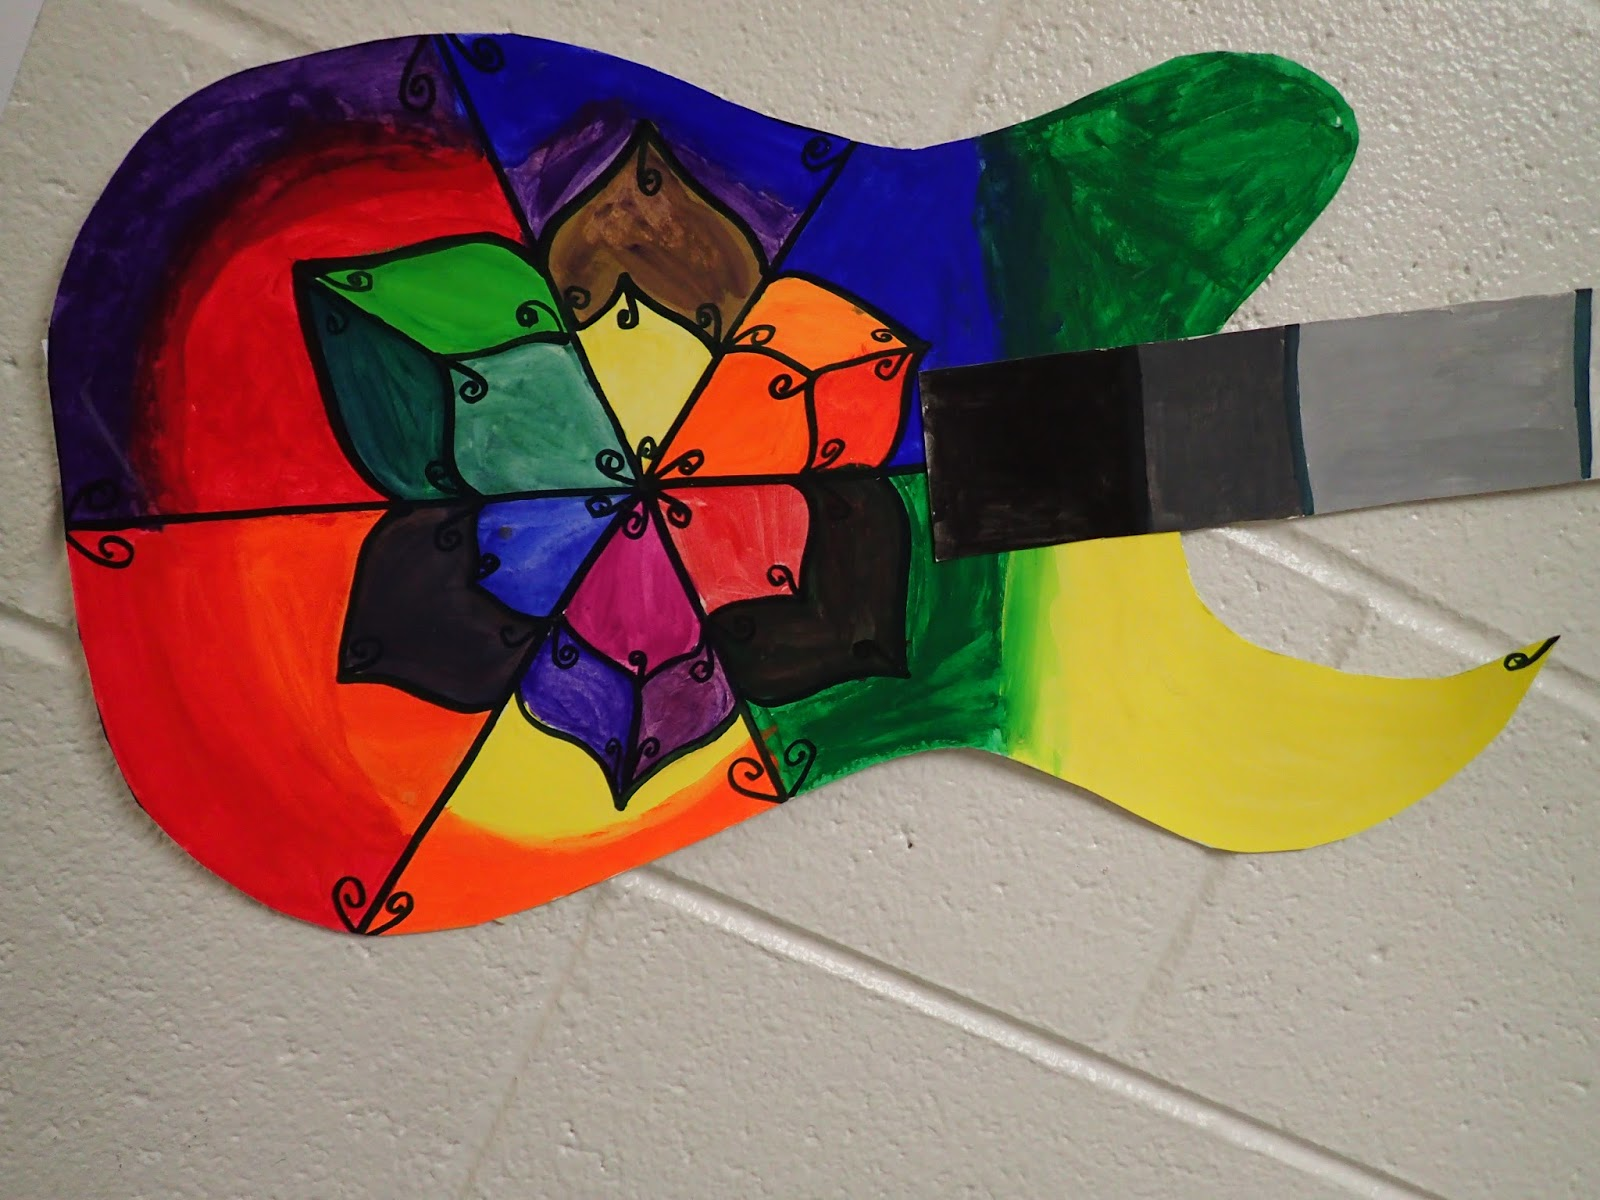 The Students Created A Basic Color Wheel With Neutral Value Scale Monochromatic Intermediate Colors Complementary